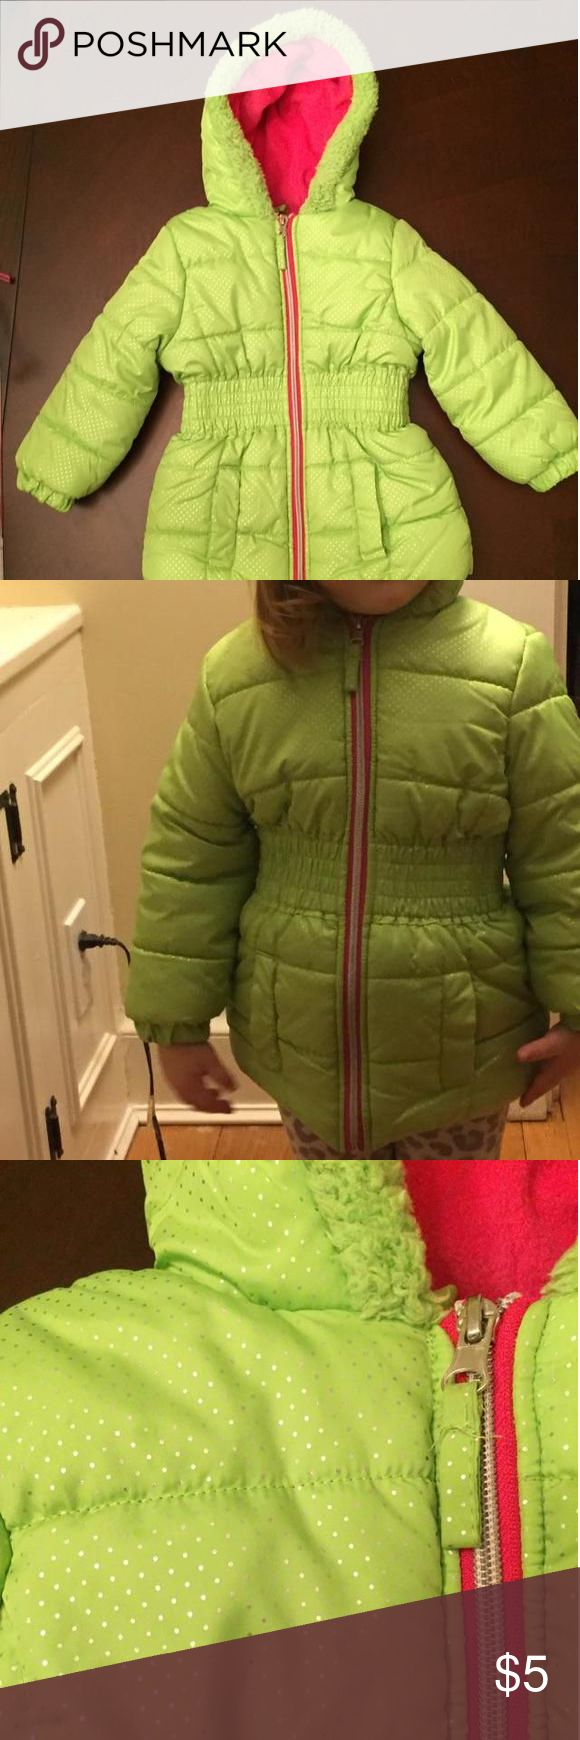 Pink Platinum Green Sparkle Snow Coat So cute! Bright green coat with sparkle detail is lined in hot pink to keep your toddler or preschooler cozy in cold weather! My 3 year old is pictured and she can just squeeze into the coat as she's already in a size 4. Dresses